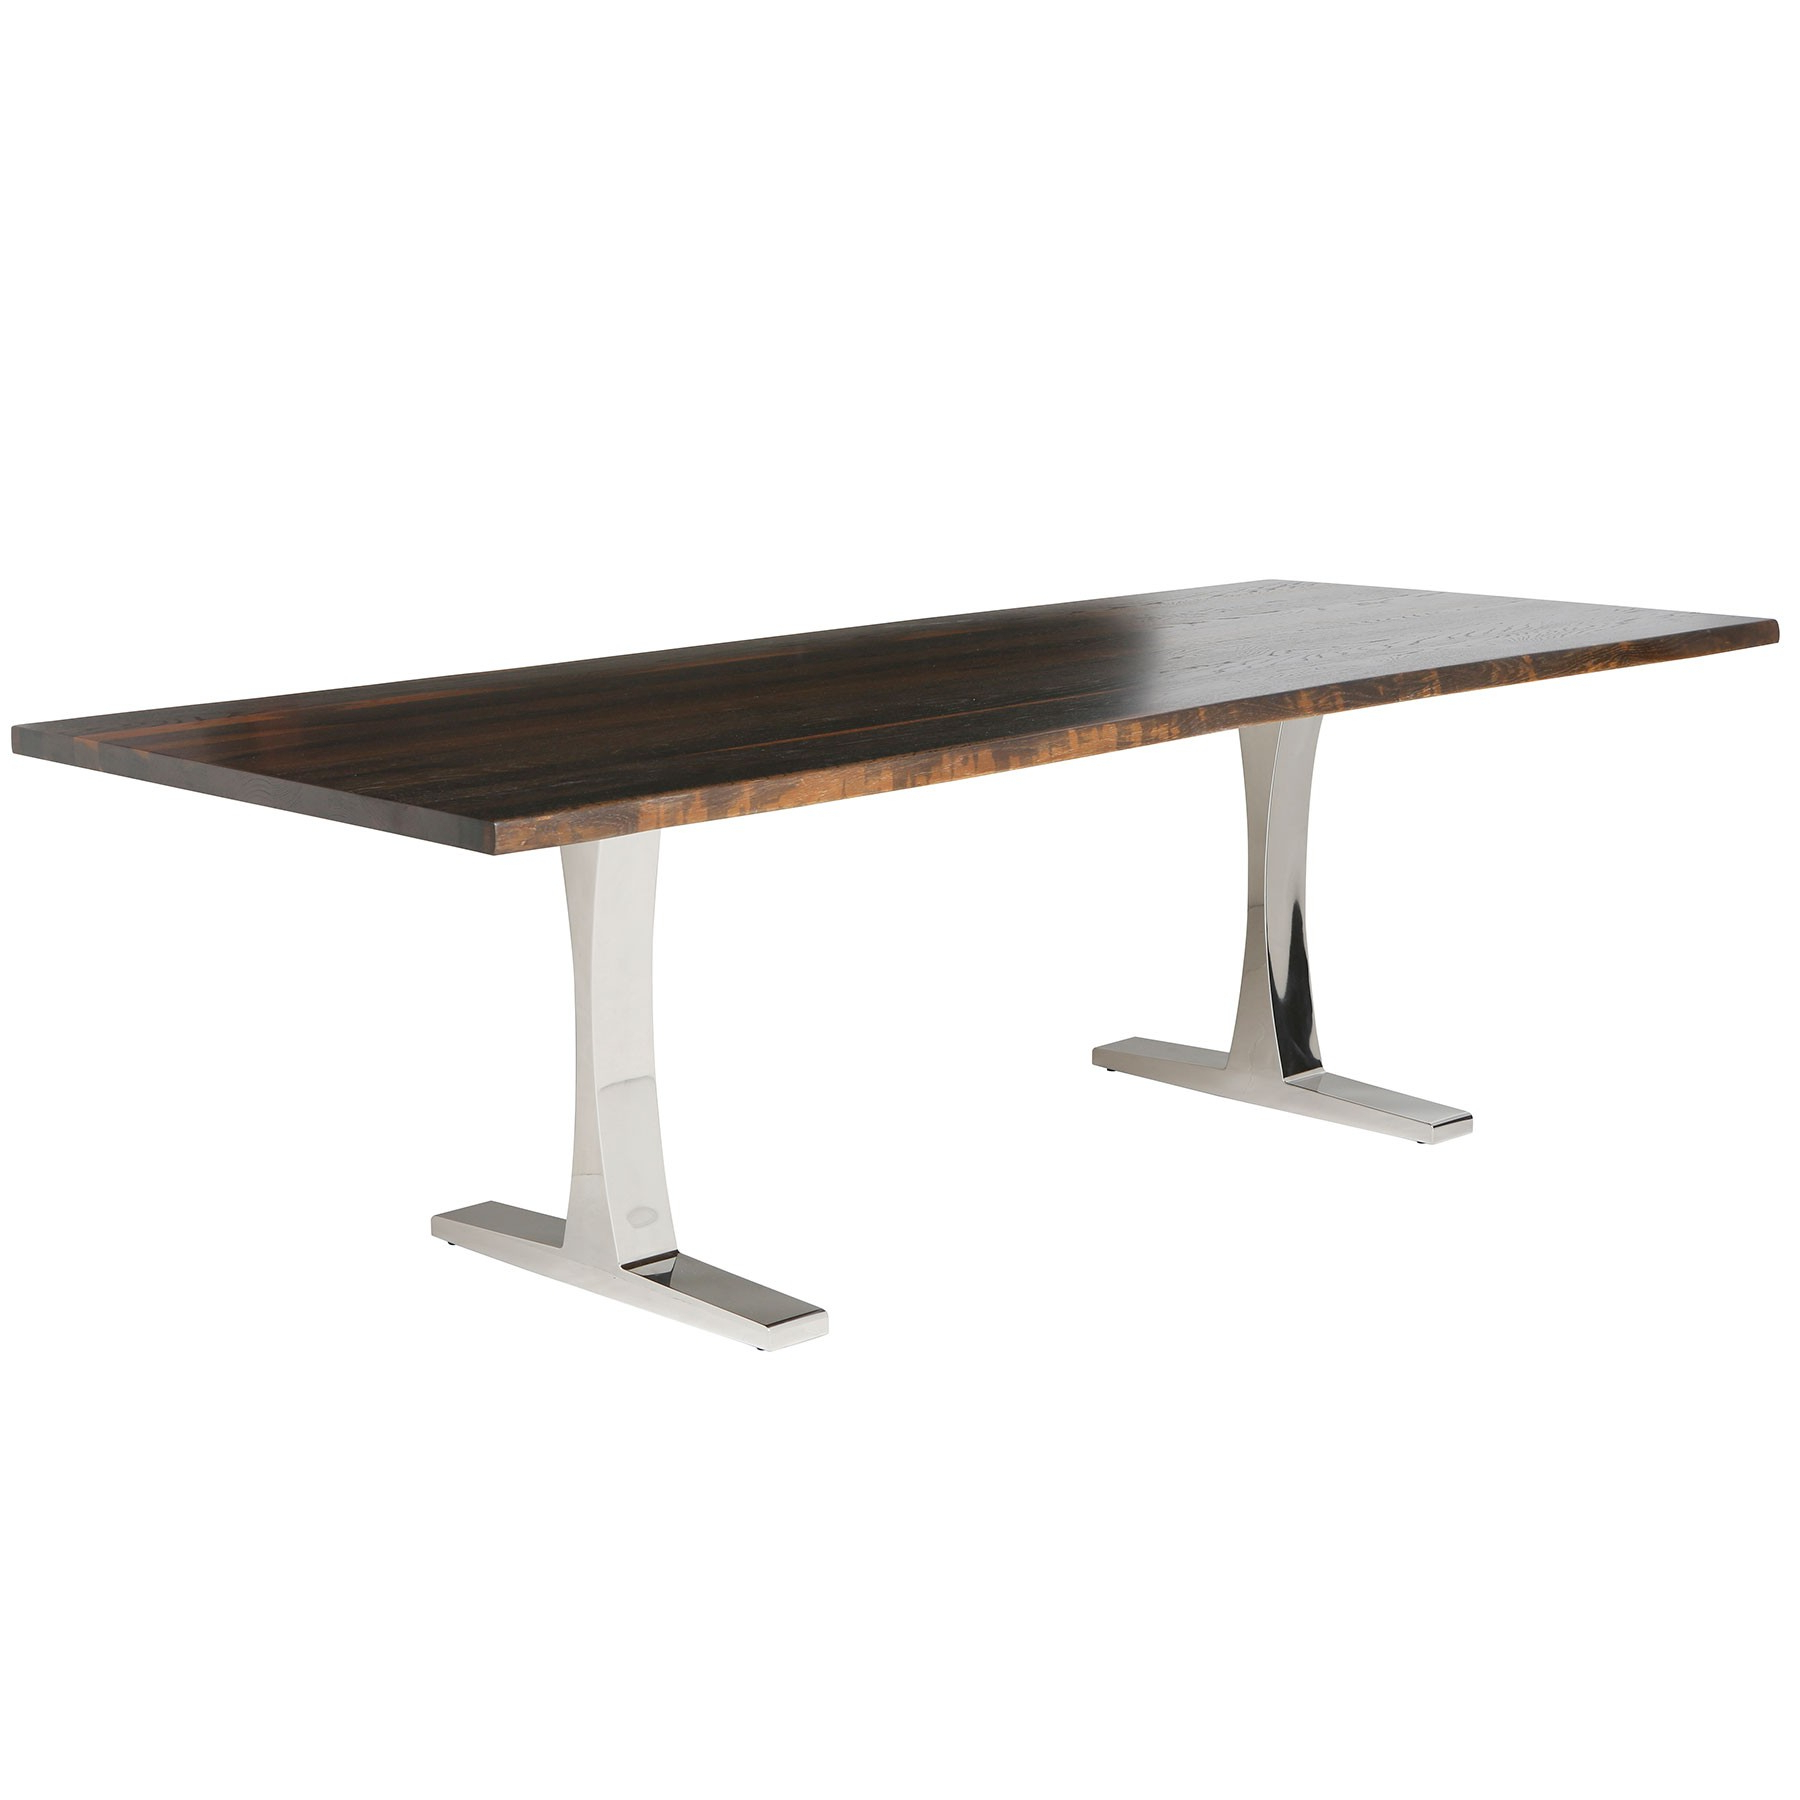 Toulouse Dining Table – Seared Oak / Stainless Pertaining To Best And Newest Dining Tables In Seared Oak (View 21 of 25)